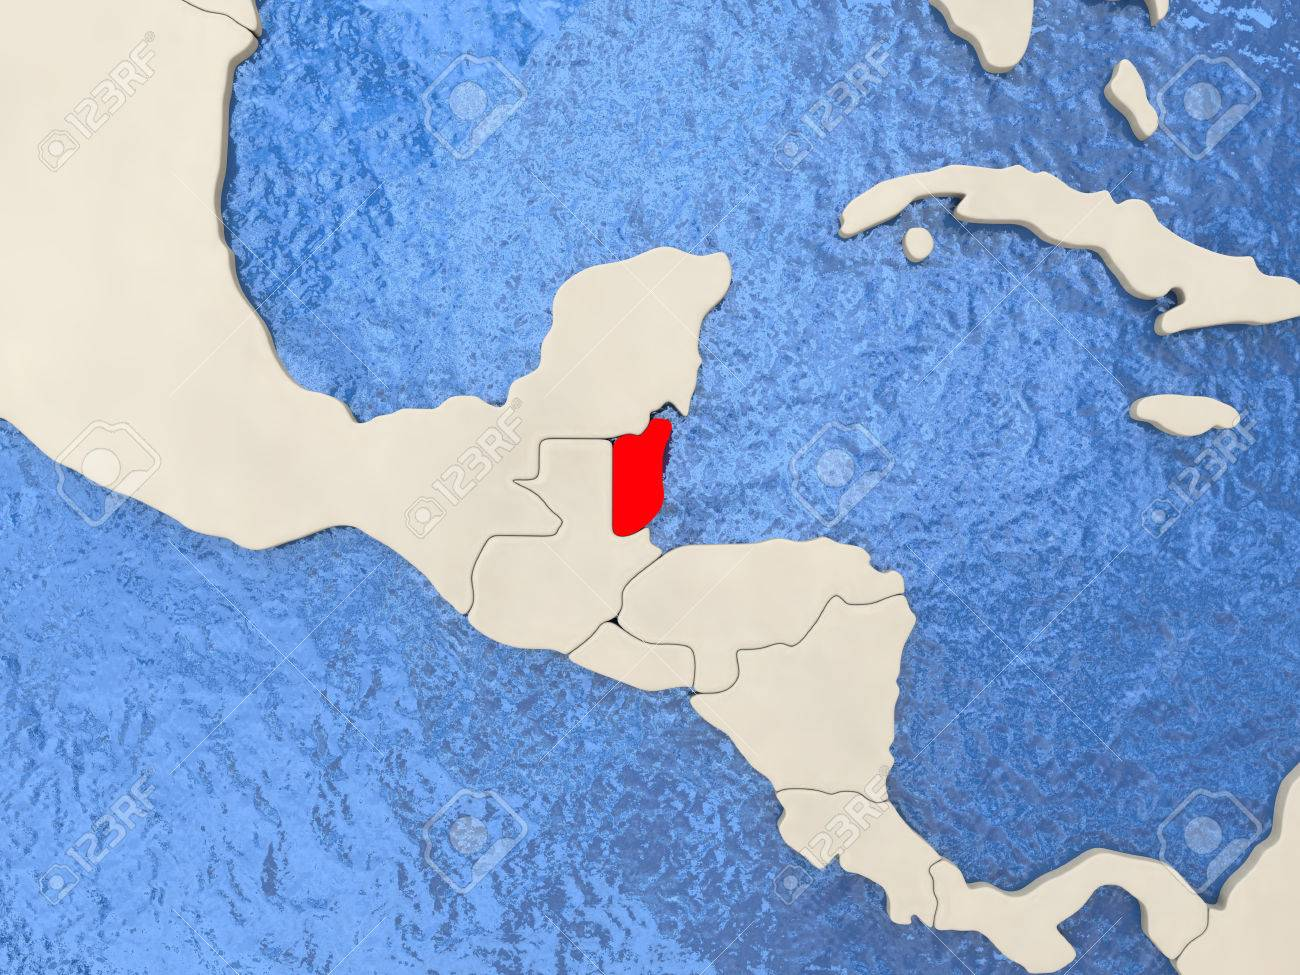 Belize Political Map.Belize In Red On Political Map With Watery Oceans 3d Illustration